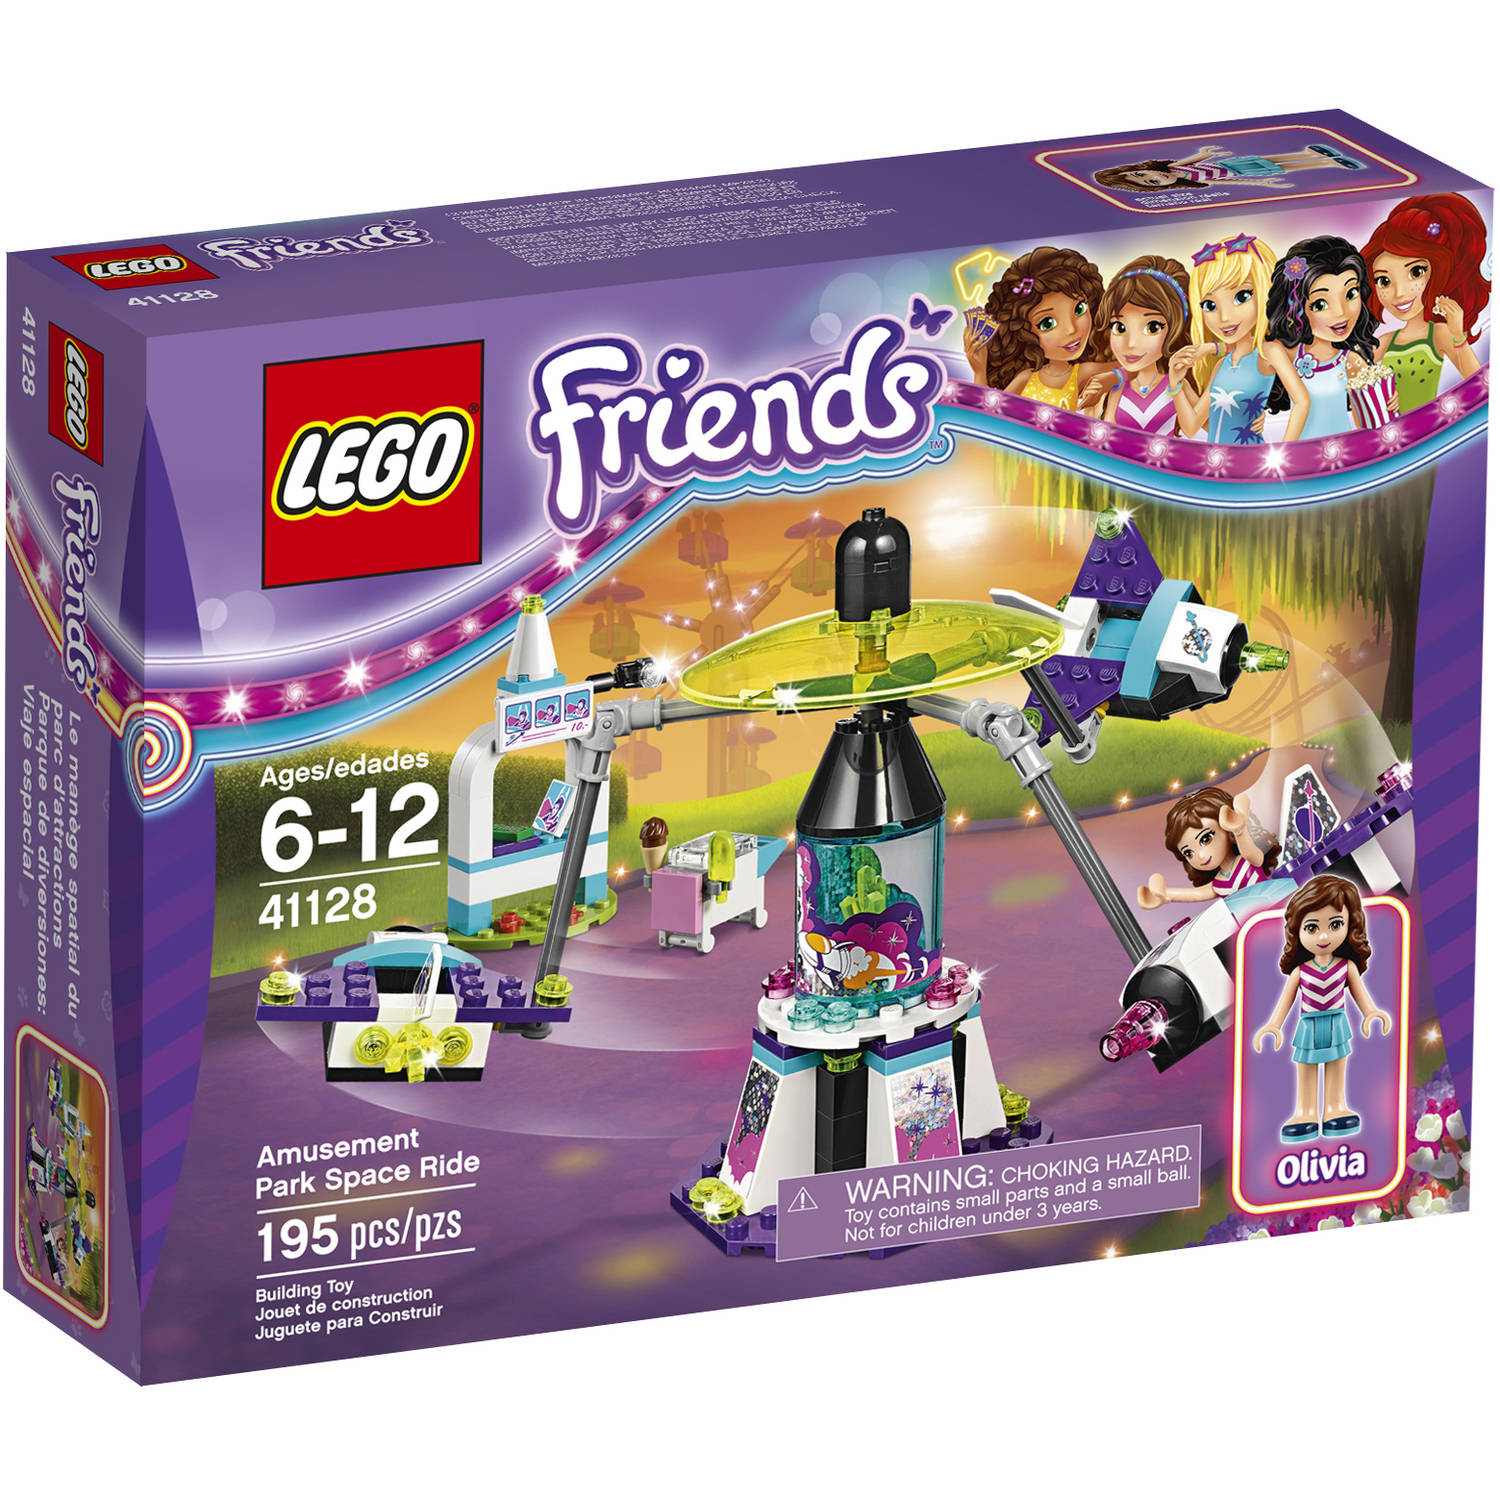 Click here to buy Lego Friends Amusement Park Space Ride 41128 by LEGO Systems, Inc..